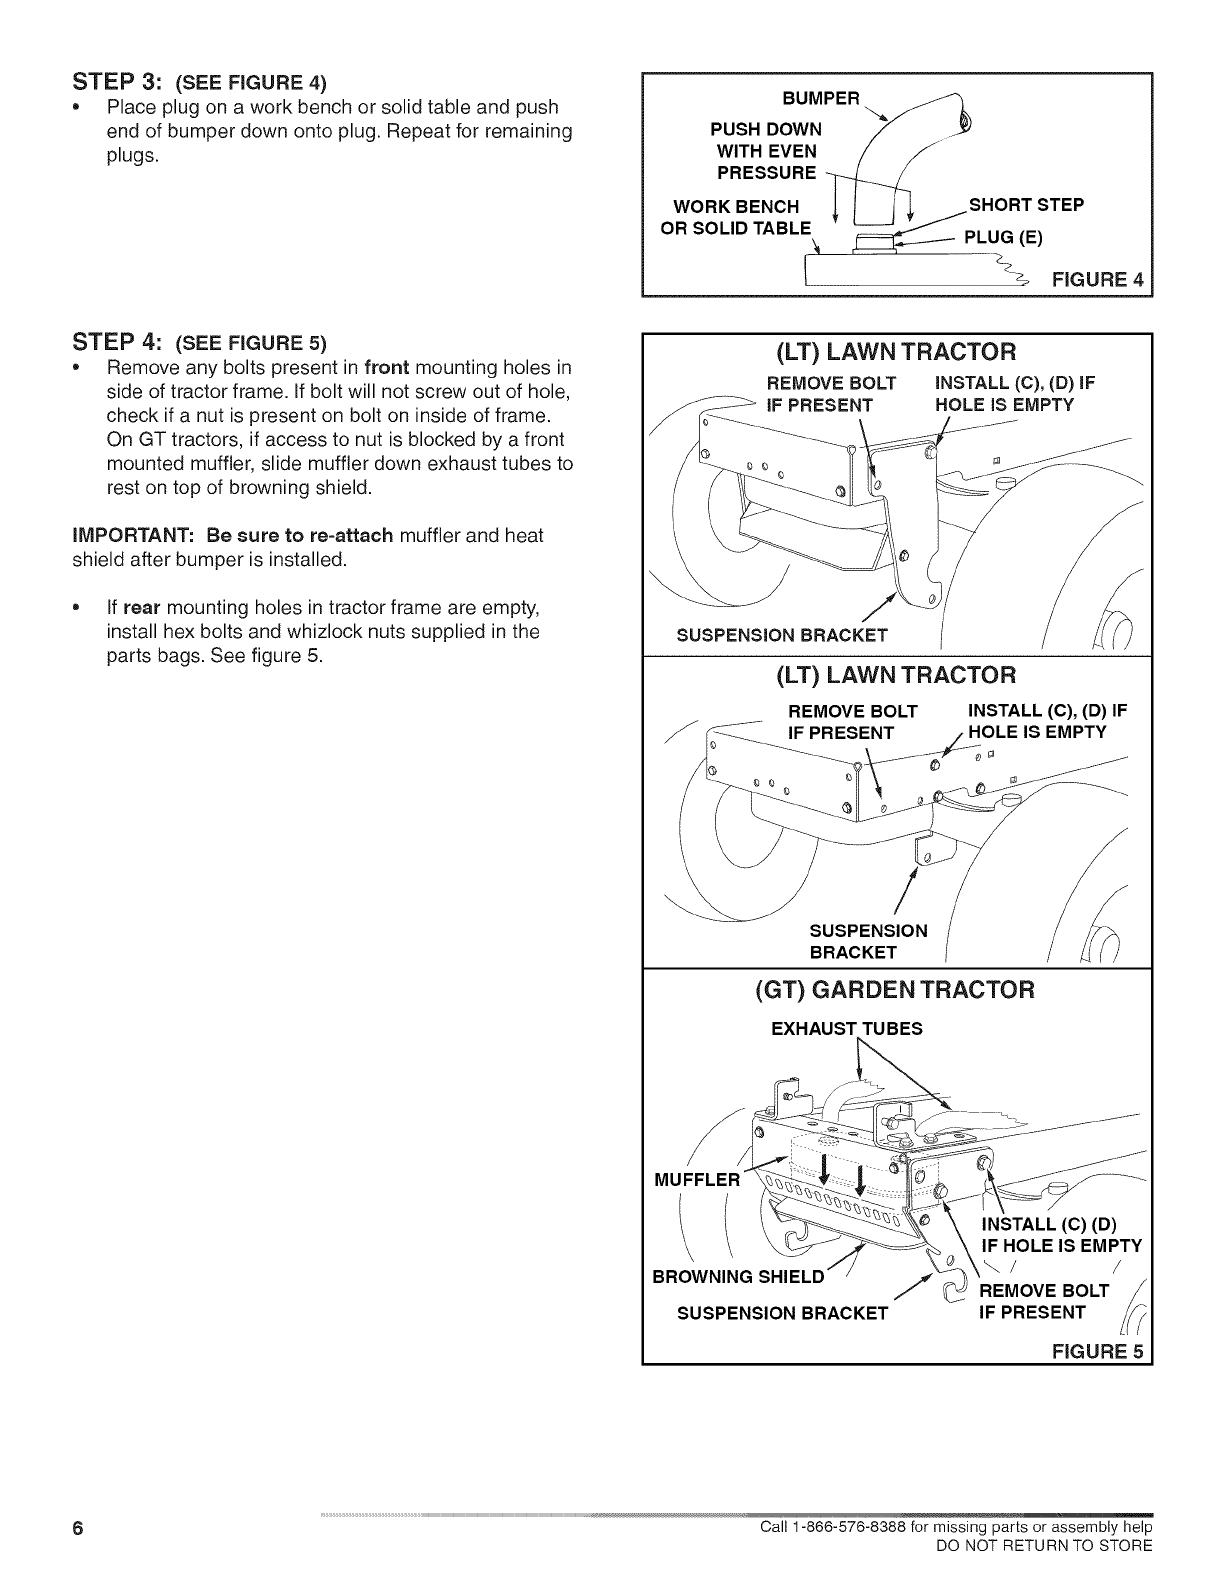 page 6 of craftsman lawn mower accessory 486 24608 user guide rh lawnandgarden manualsonline com Craftsman Riding Lawn Mower Engines Craftsman Lawn Mower 917 Series